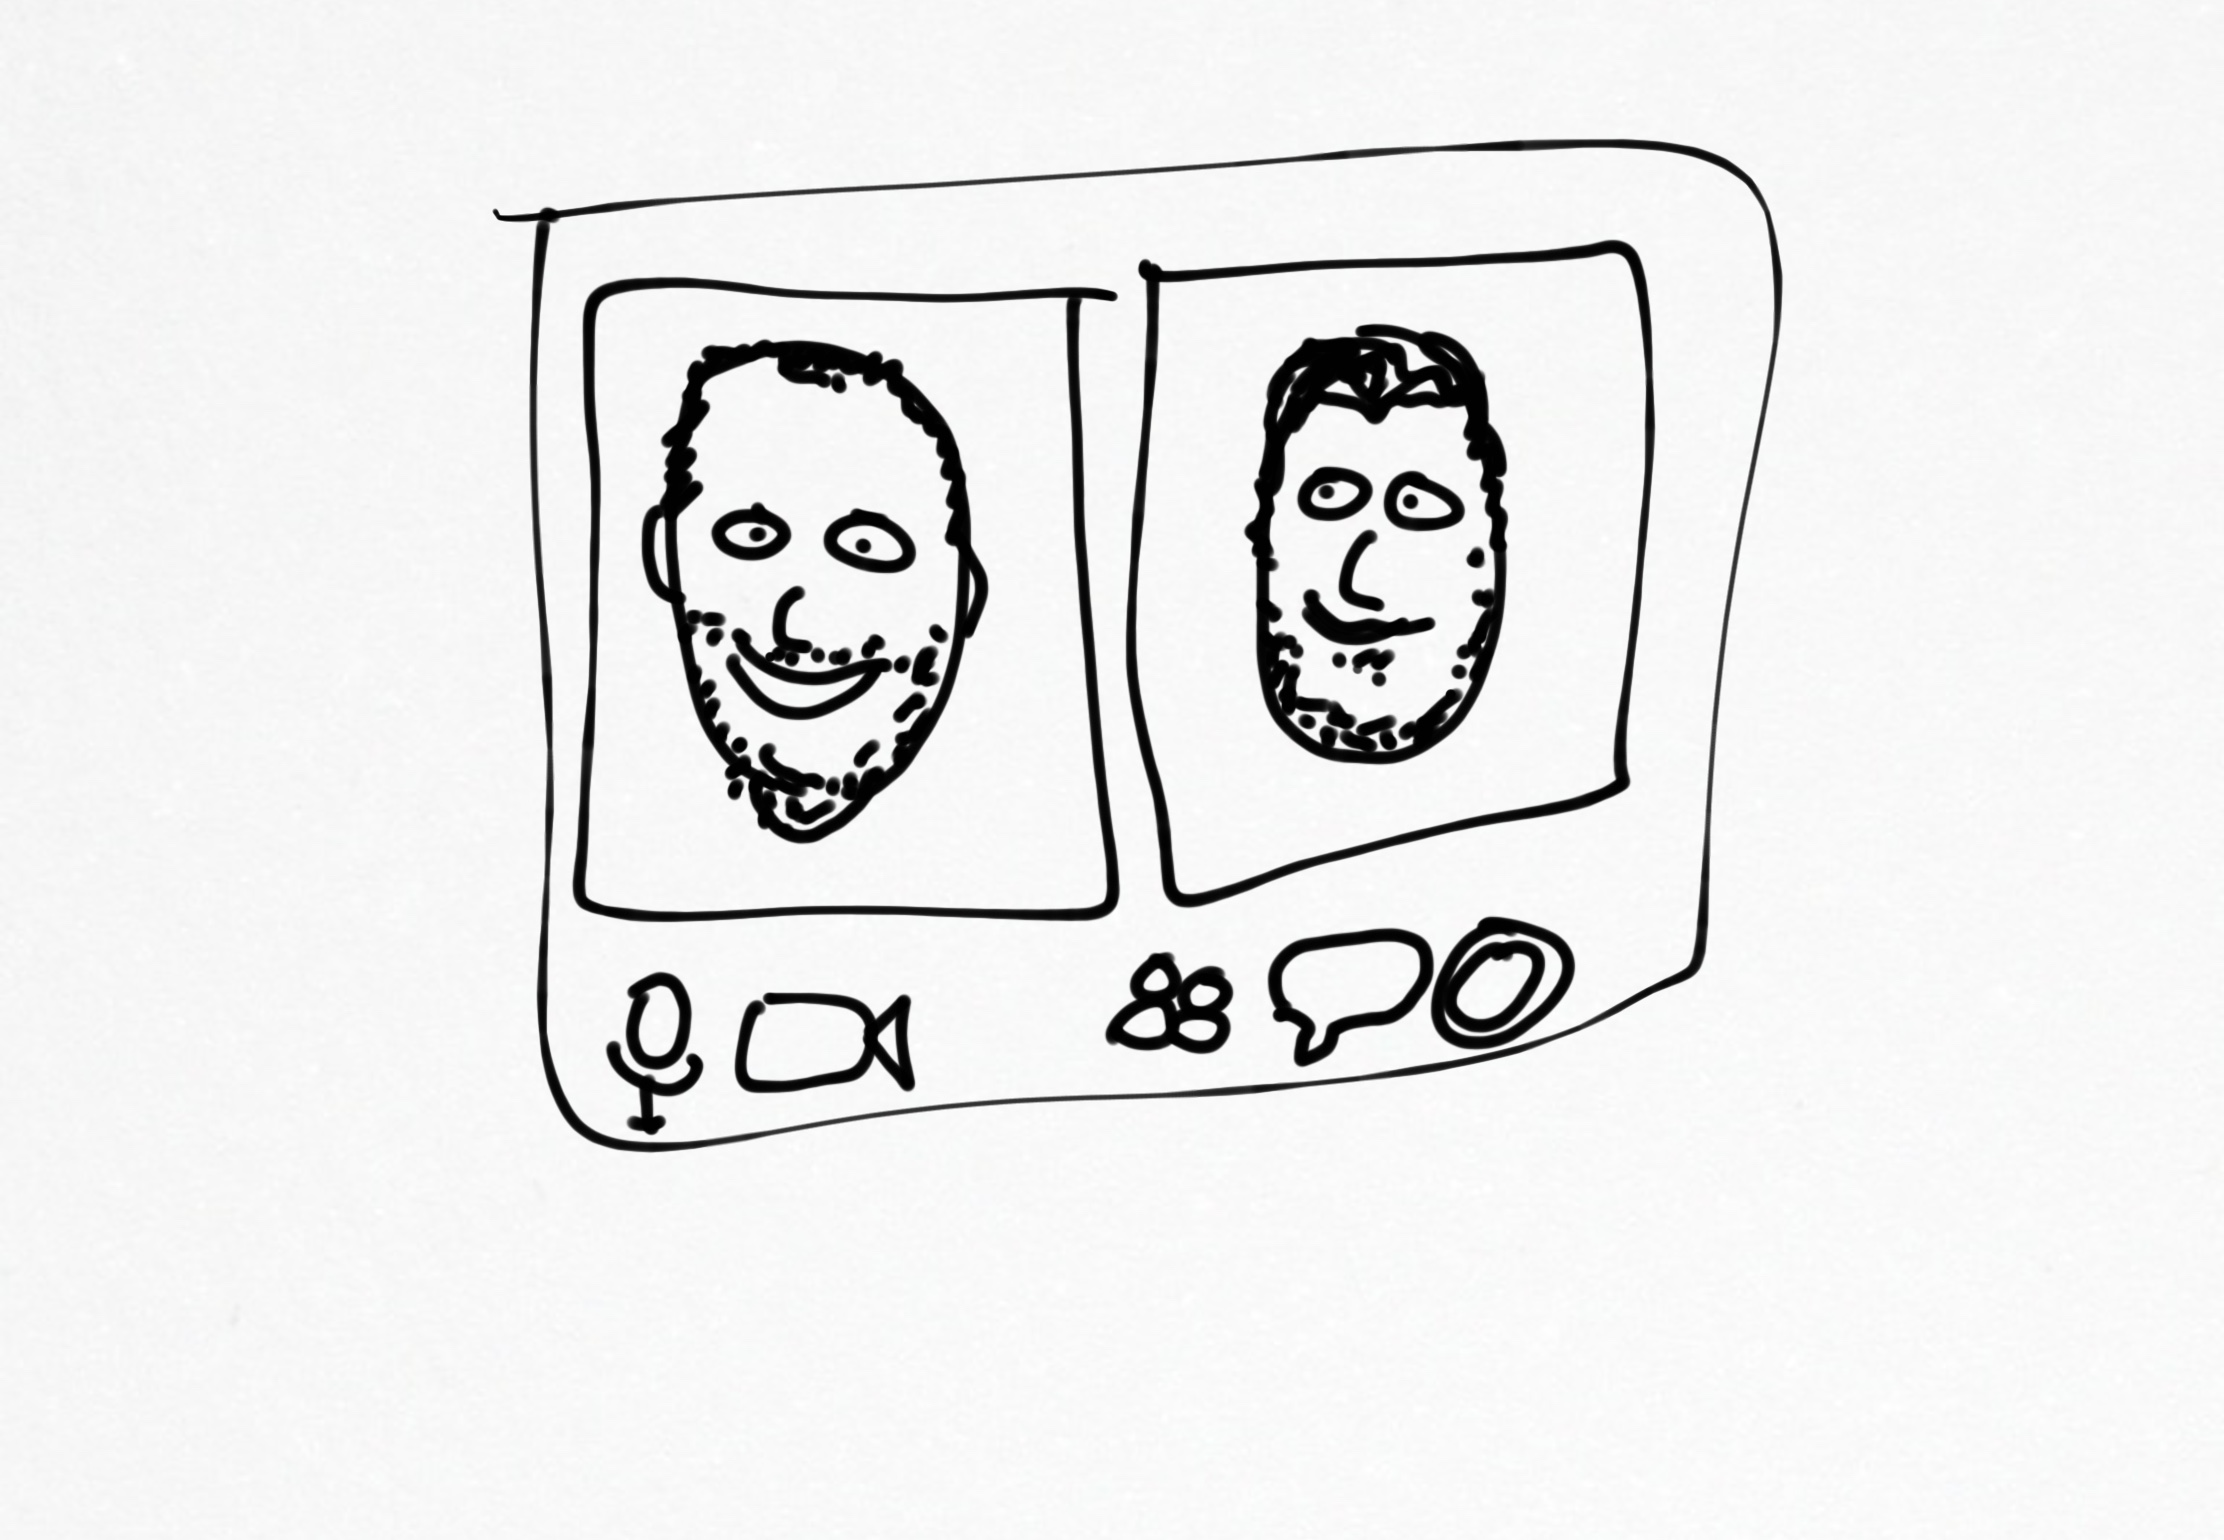 A pen sketch by Neil on he and I on zoom together for our random coffee